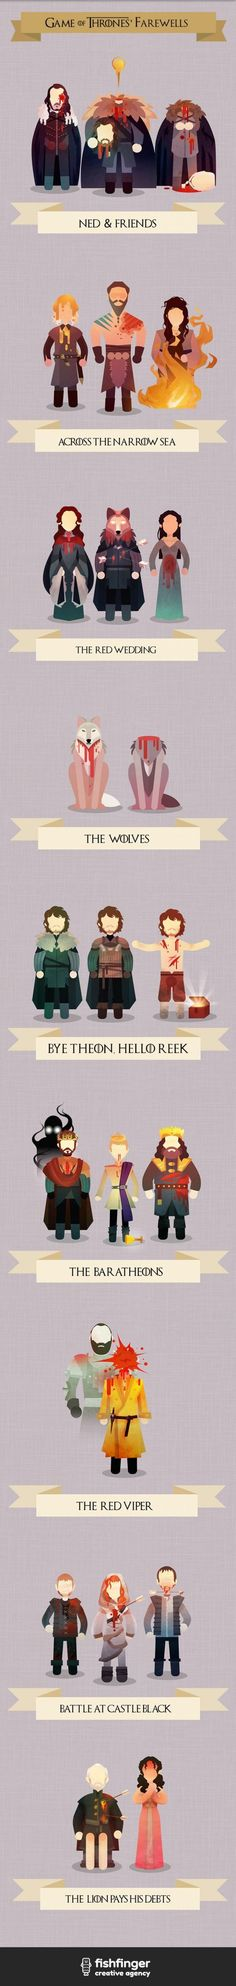 Game of Thrones Deaths Illustrated